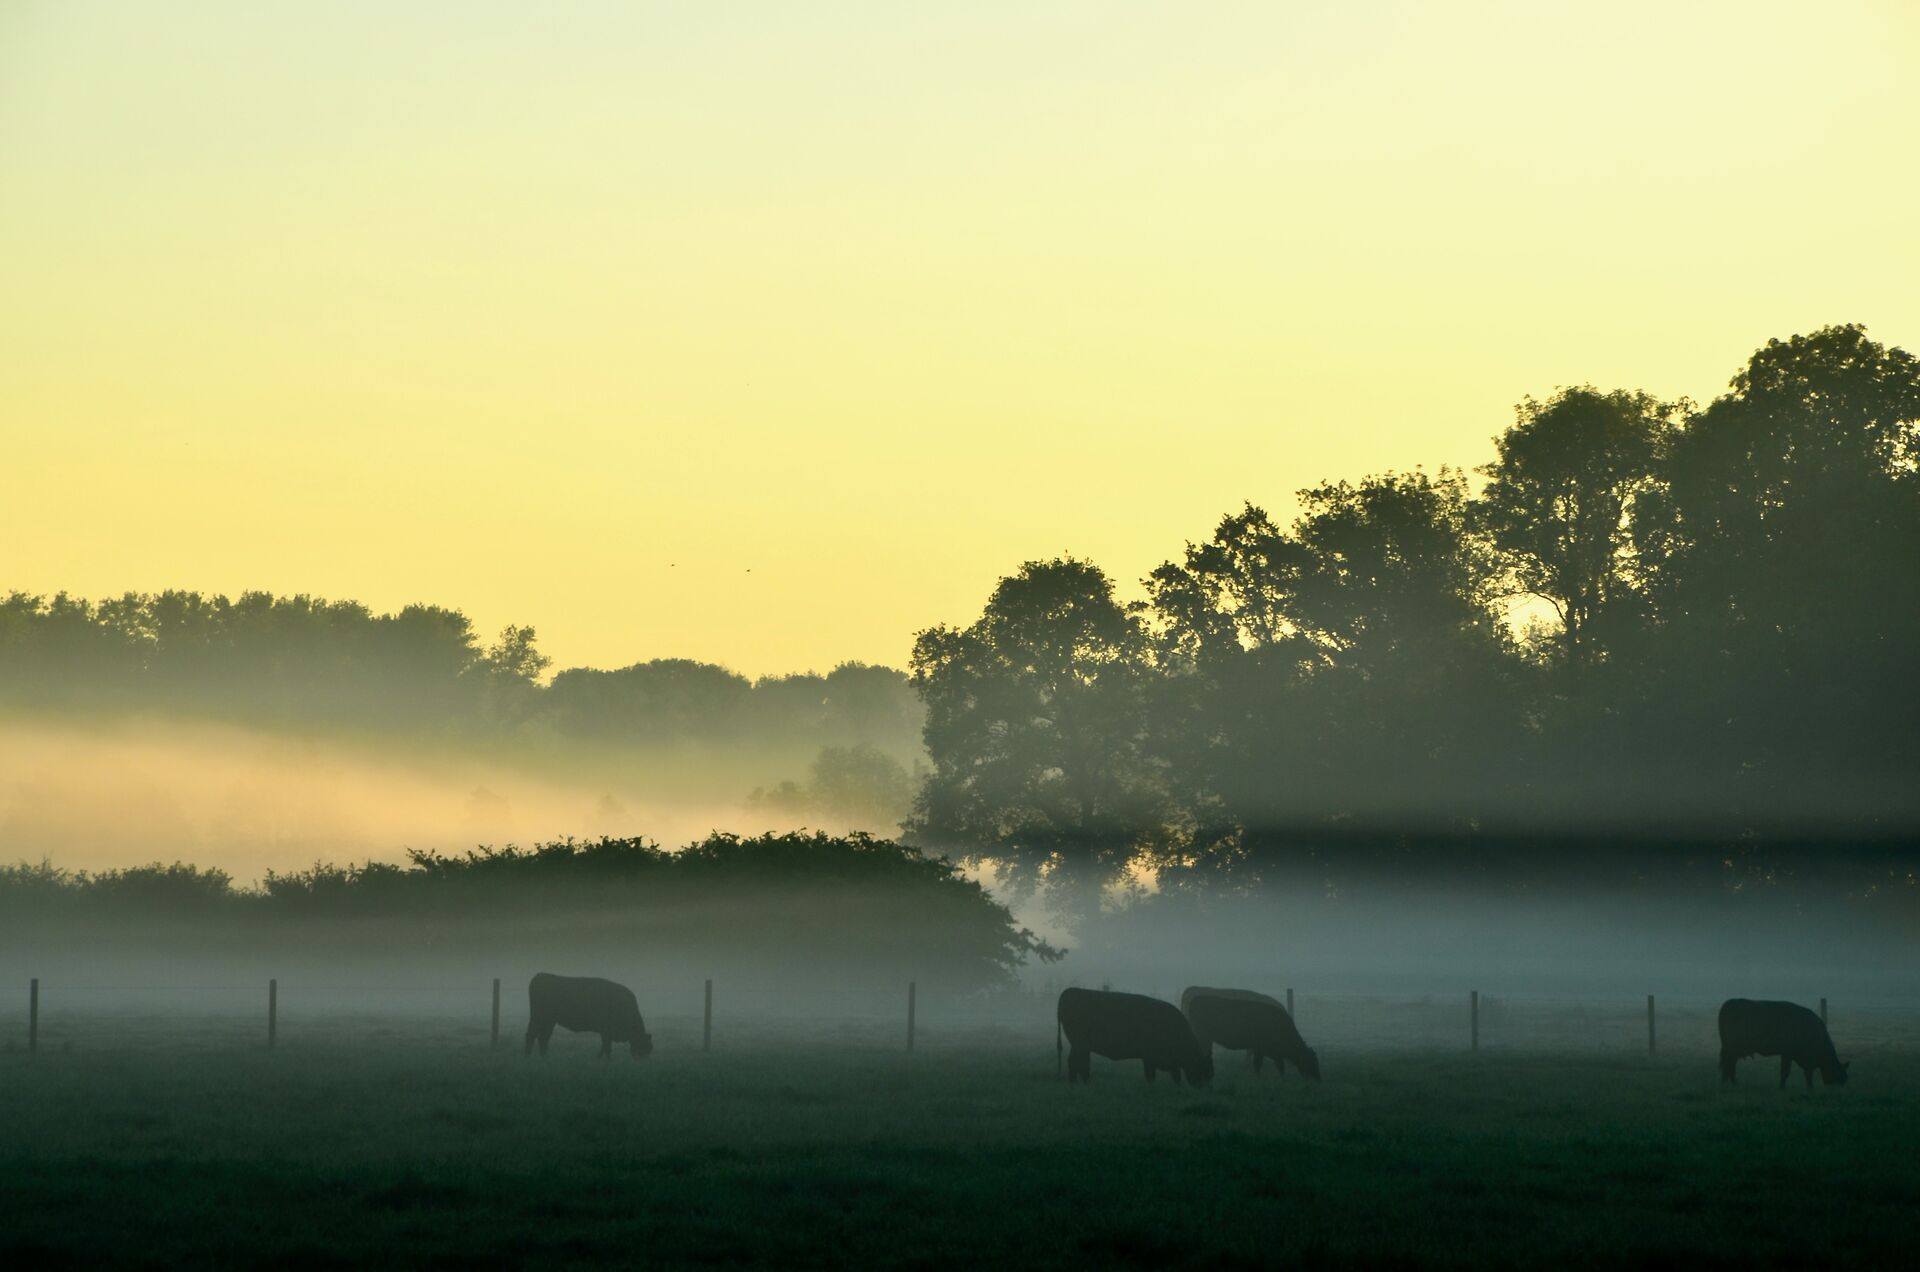 Rinder im Morgennebel, Münsterland